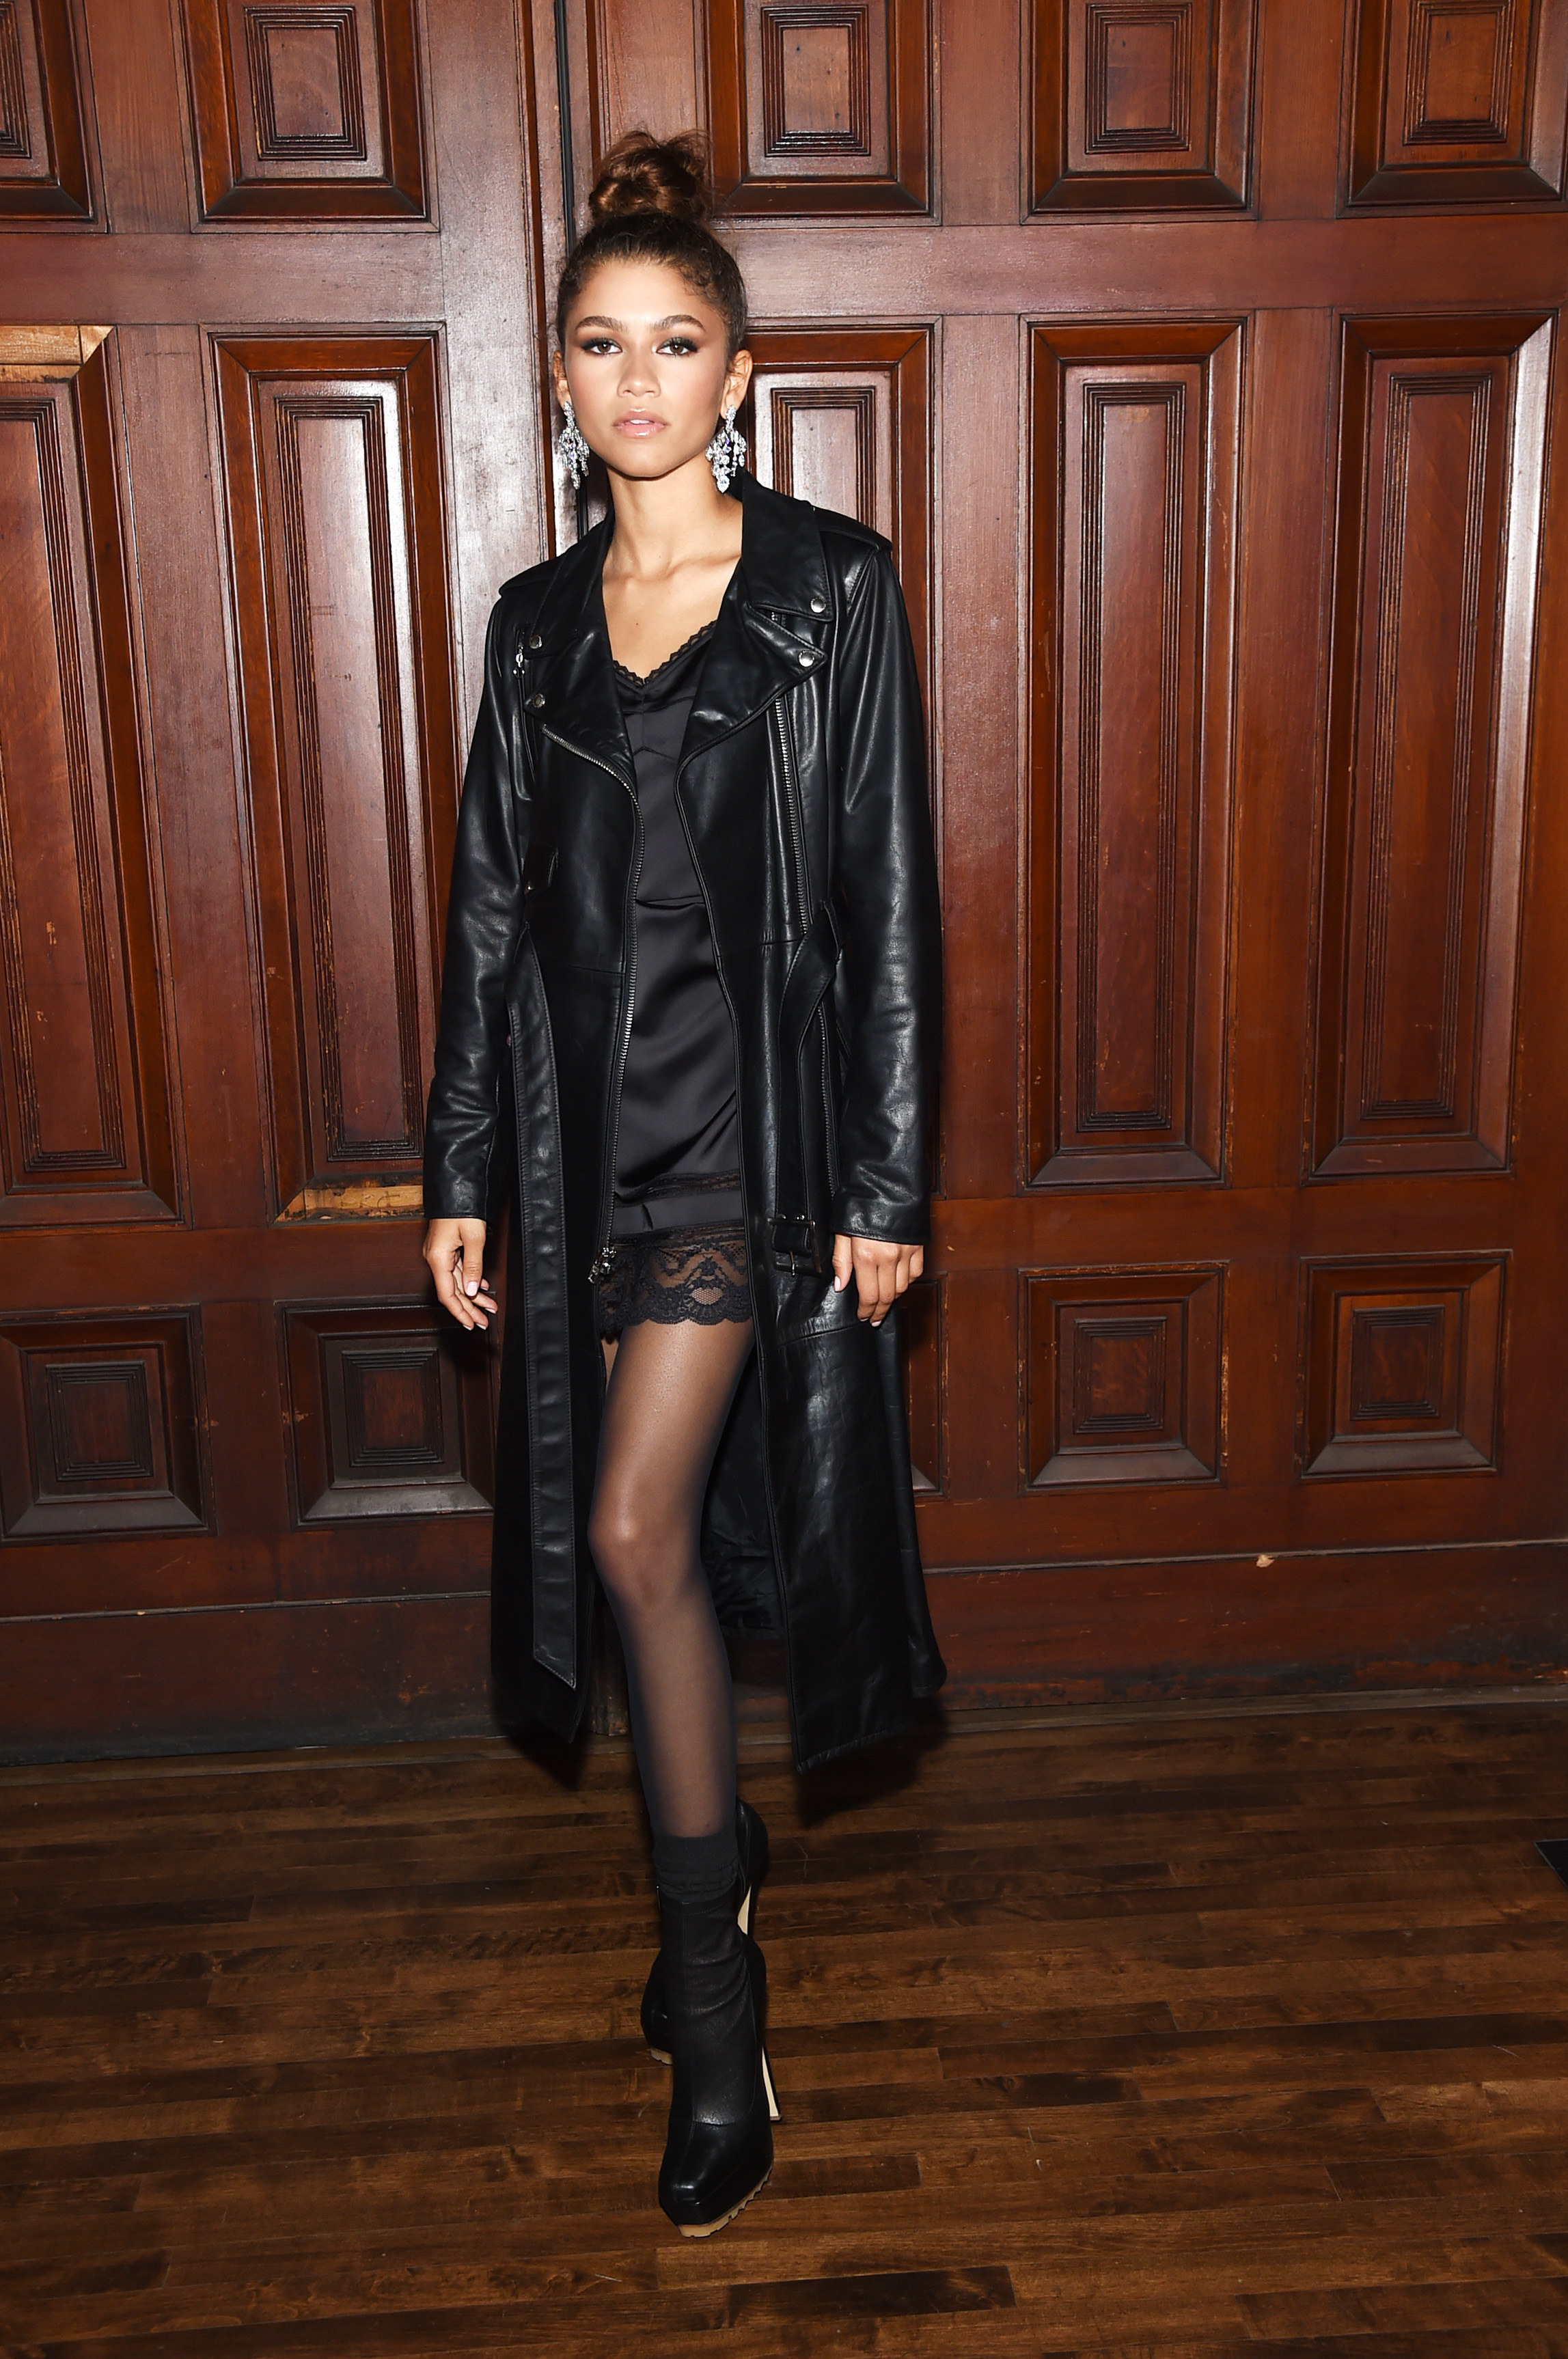 Zendaya posing wearing hair in a tight topknot, with a slip dress, knee-length leather jacket and boots.